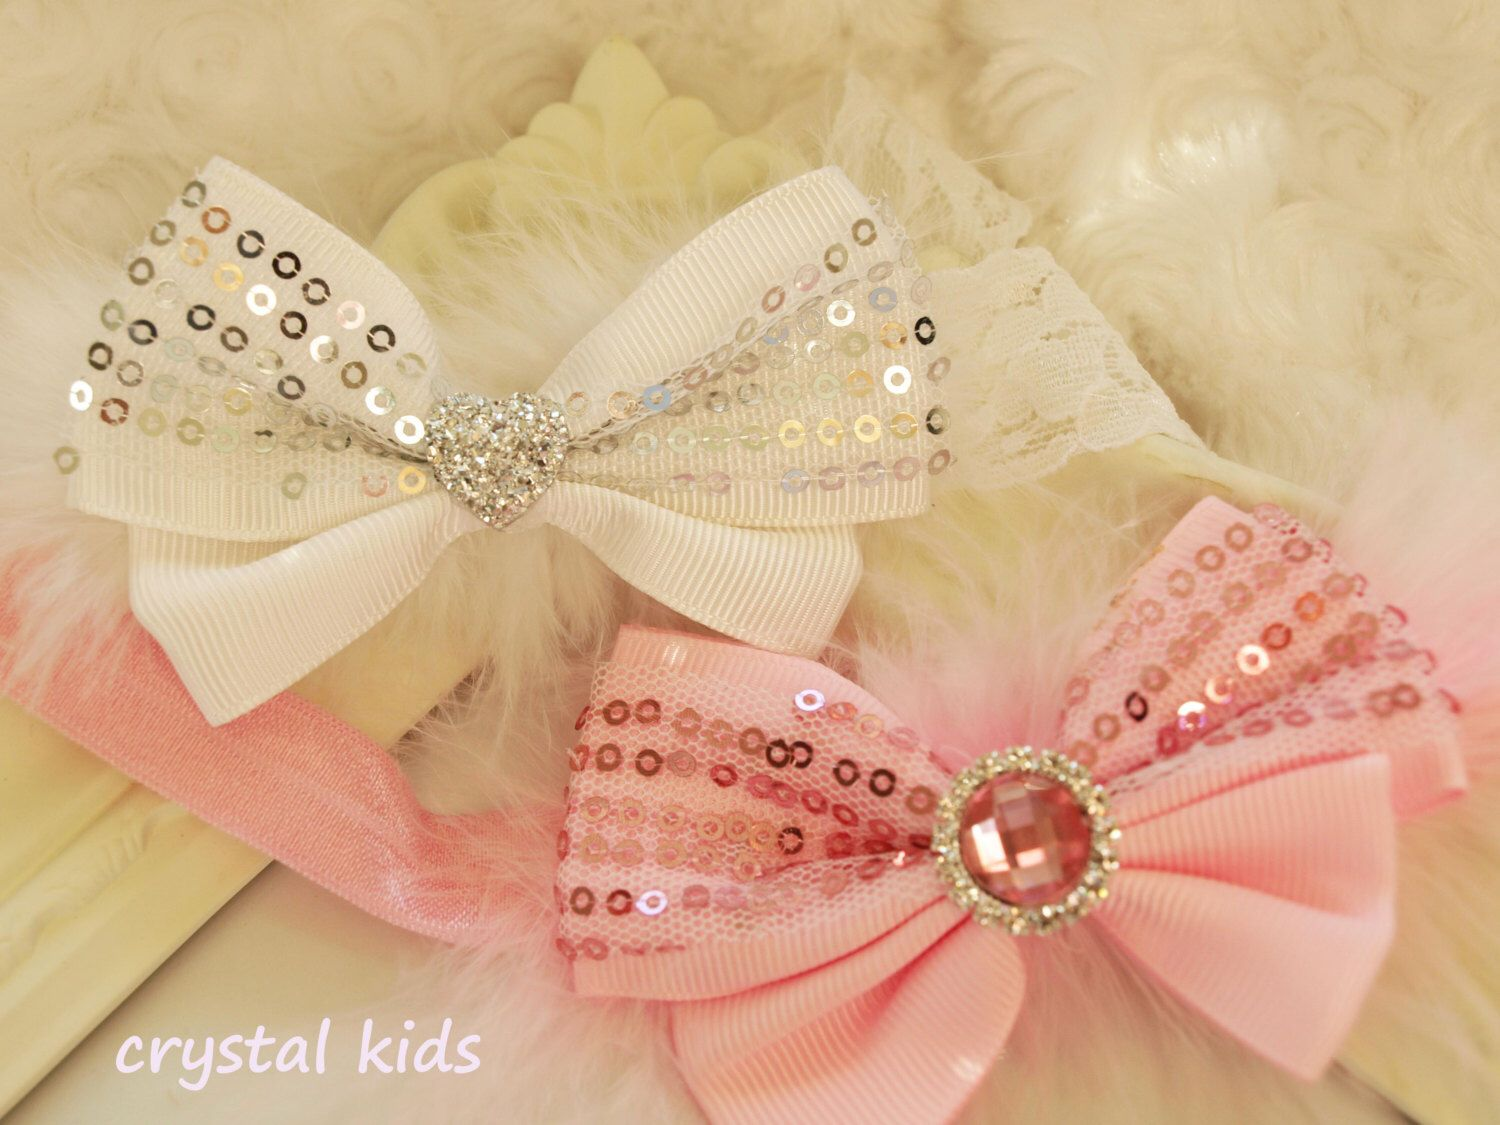 6c69b90fc7de1 Christening / wedding headband. Available in white or pink from my Etsy  shop https: